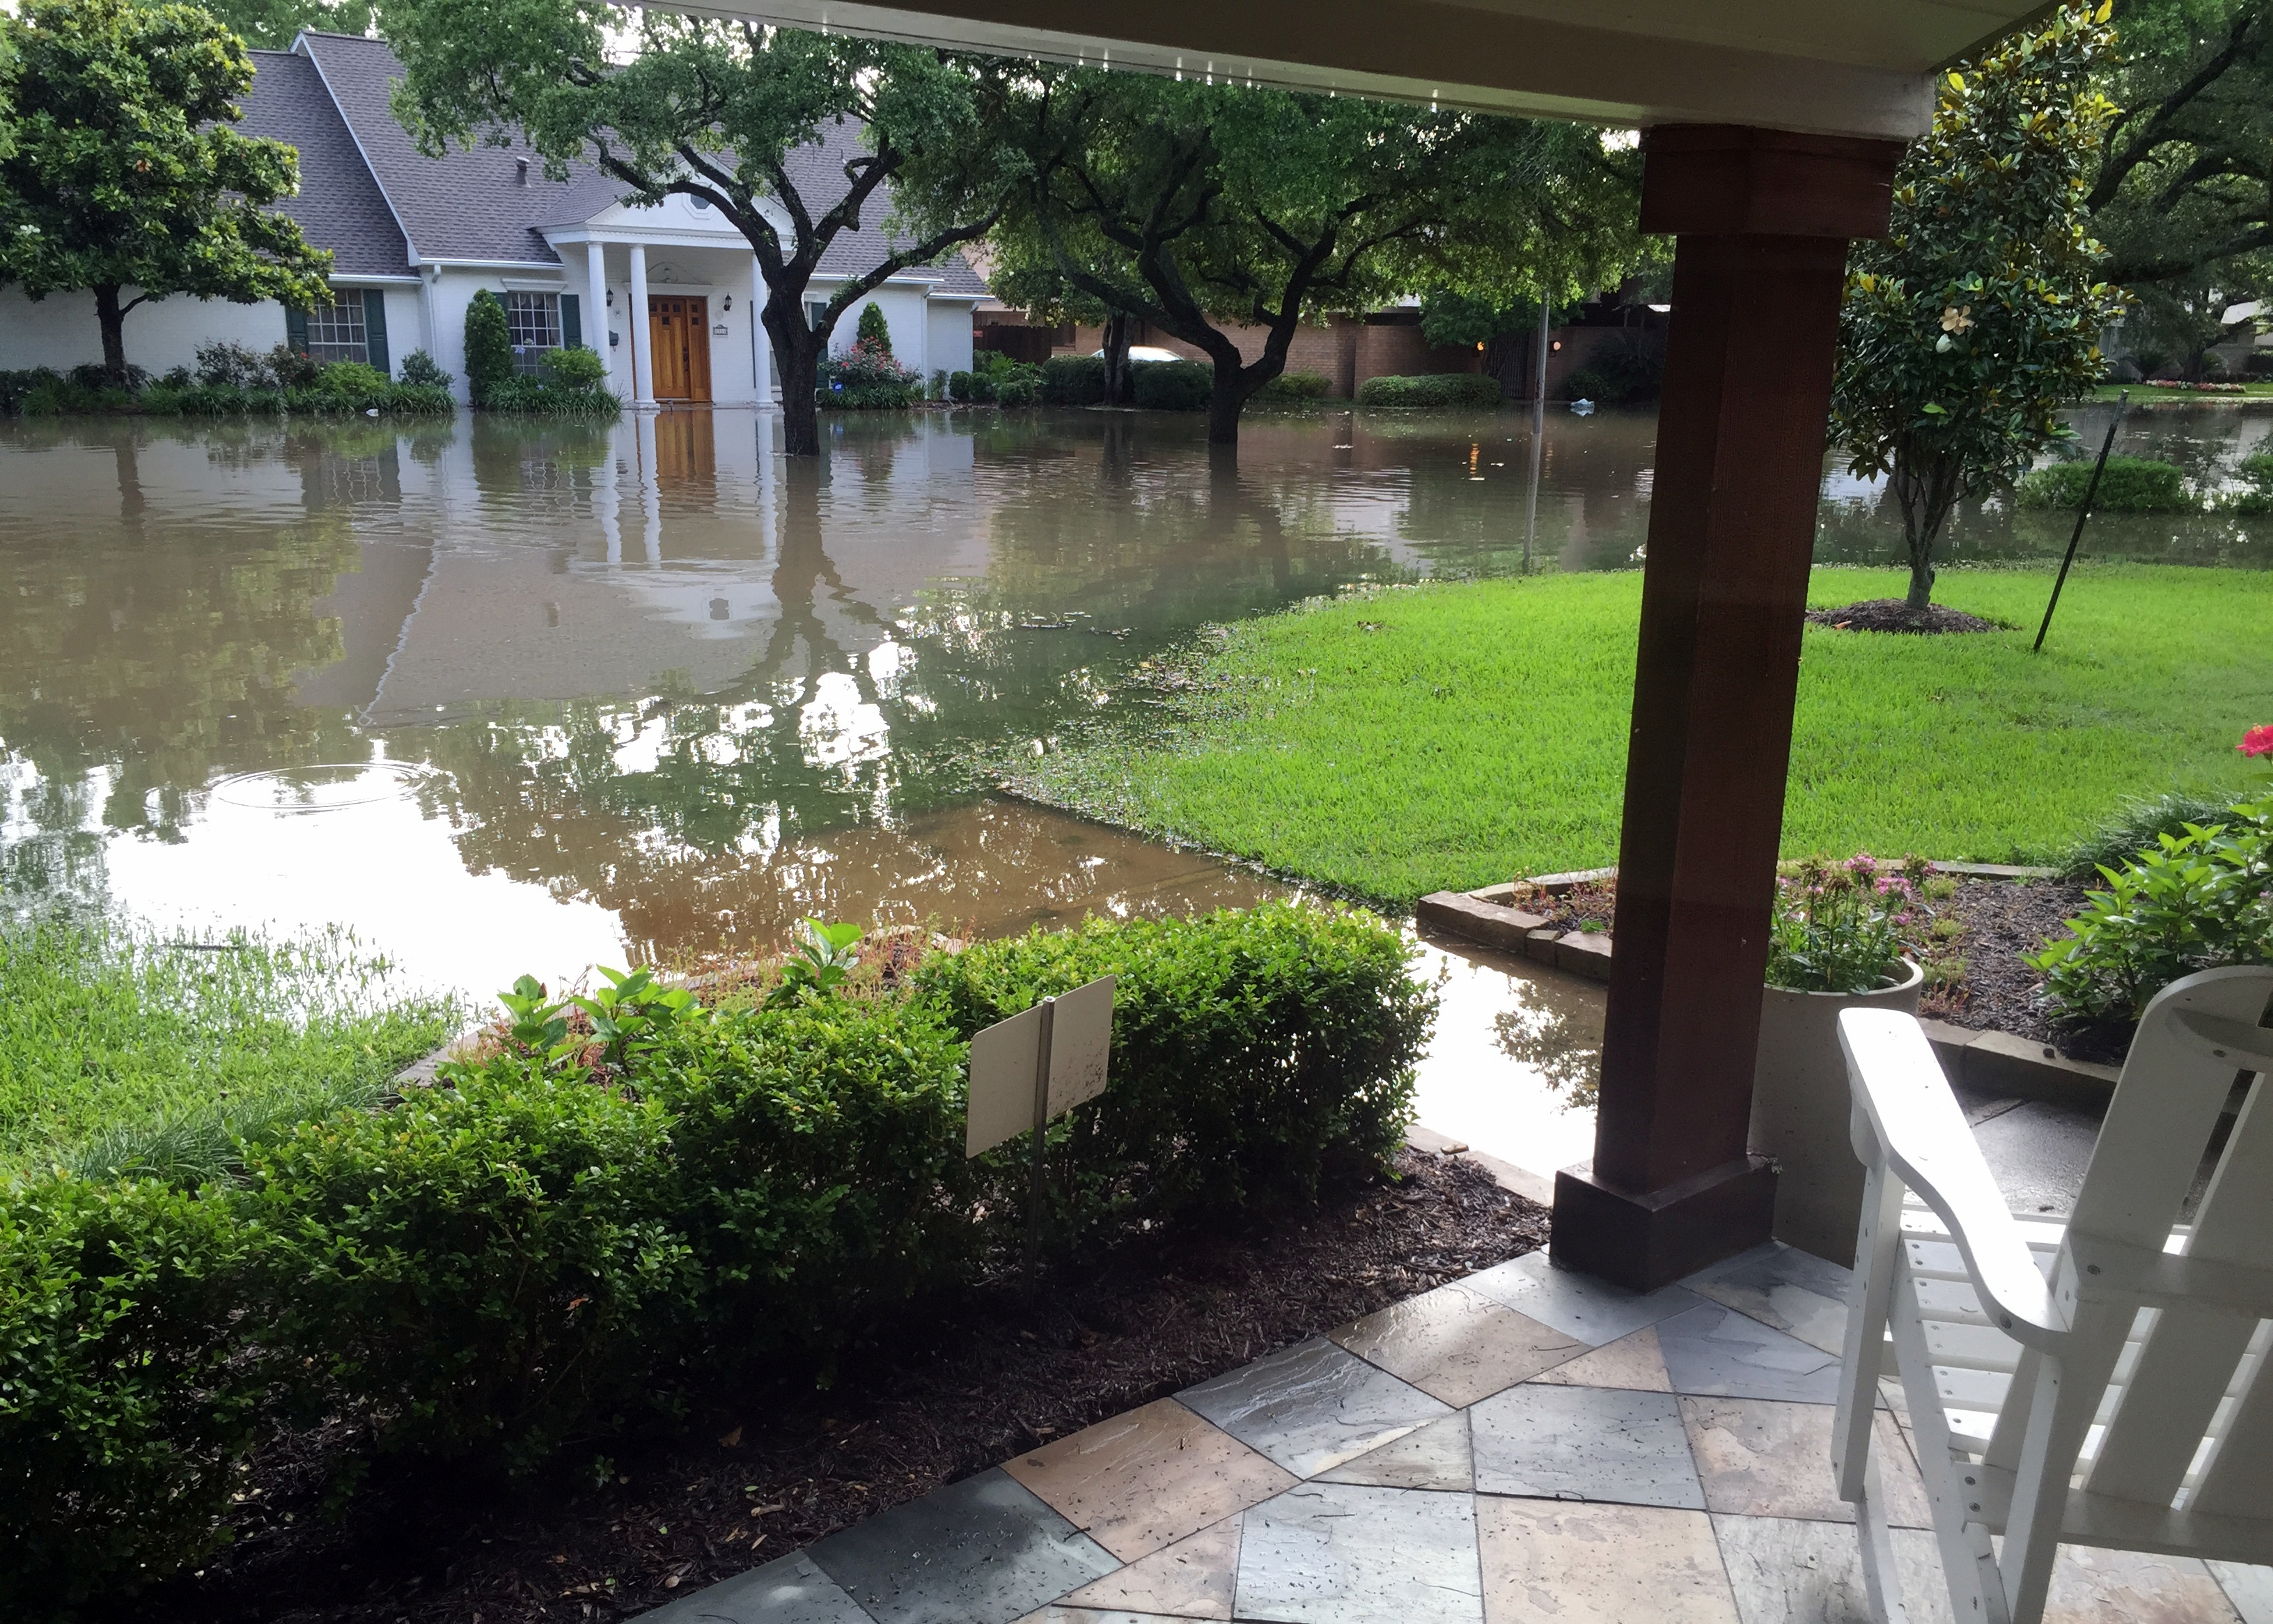 Another viewpoint - this porch was under water as well